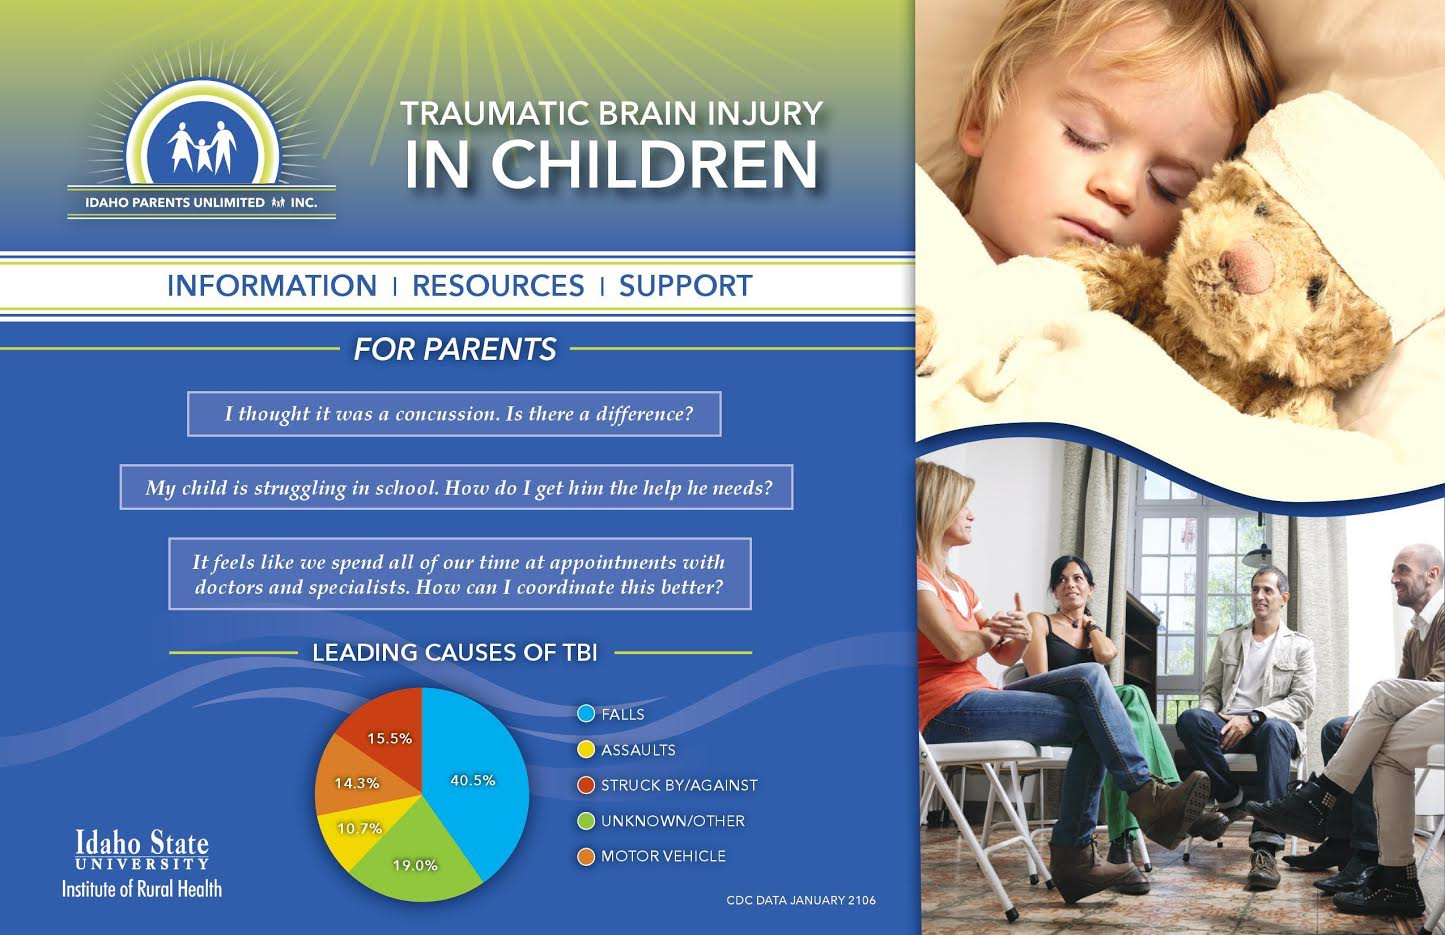 An image showing information about traumatic brain injury causes